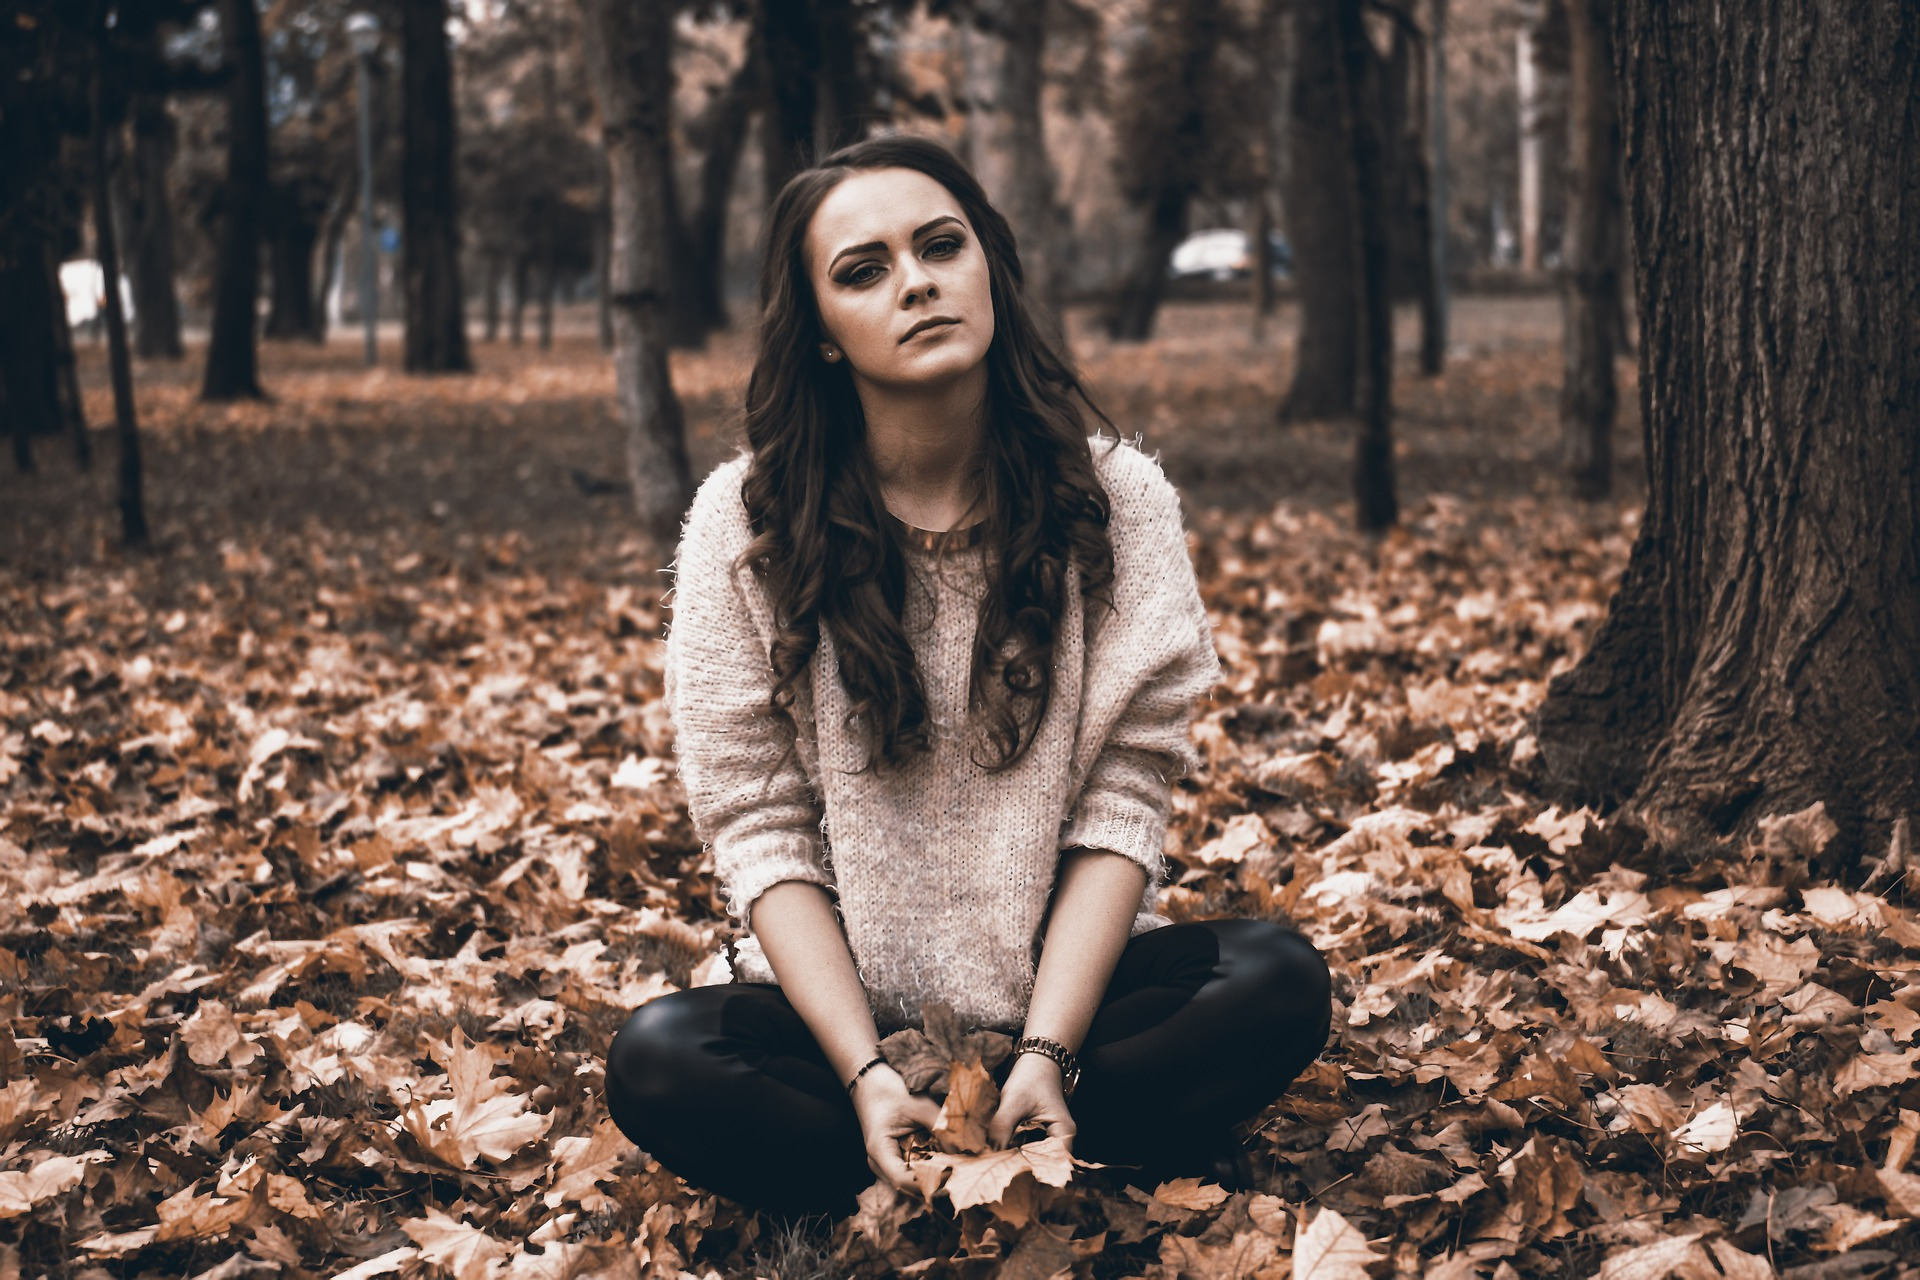 Why You Should Understand Your Emotions